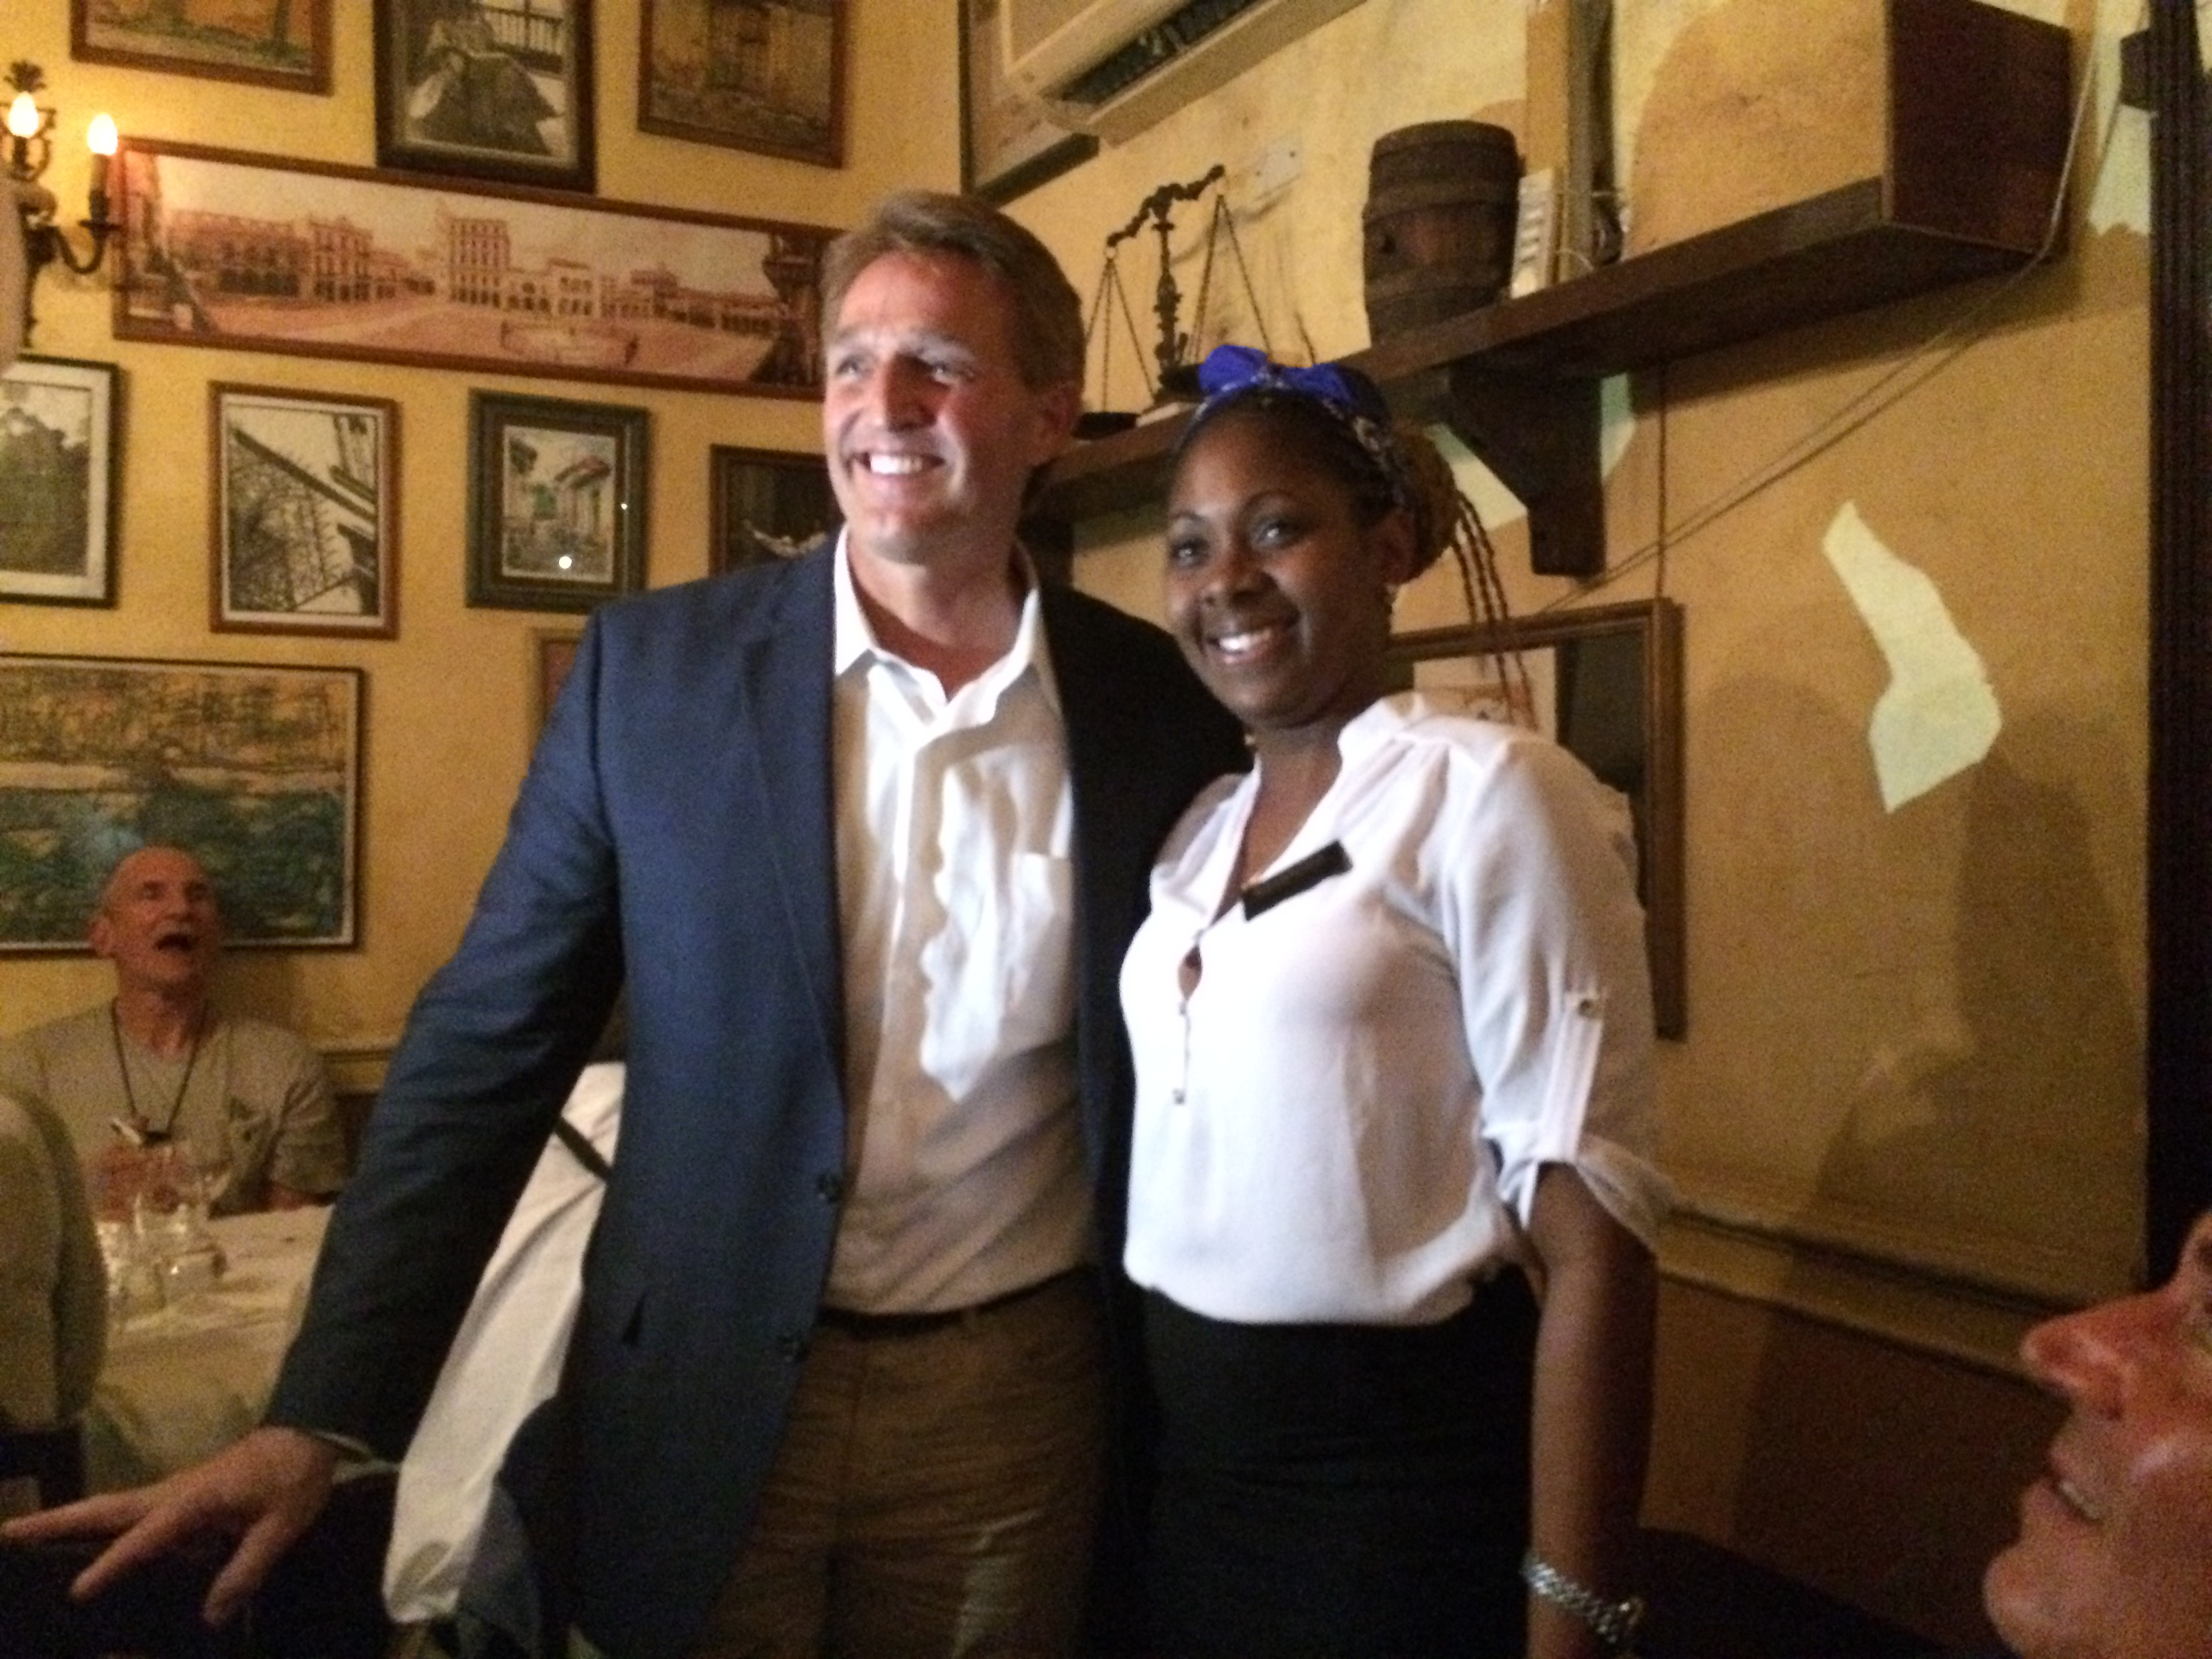 Sen. Jeff Flake and our tour guide. ||| Matt Welch